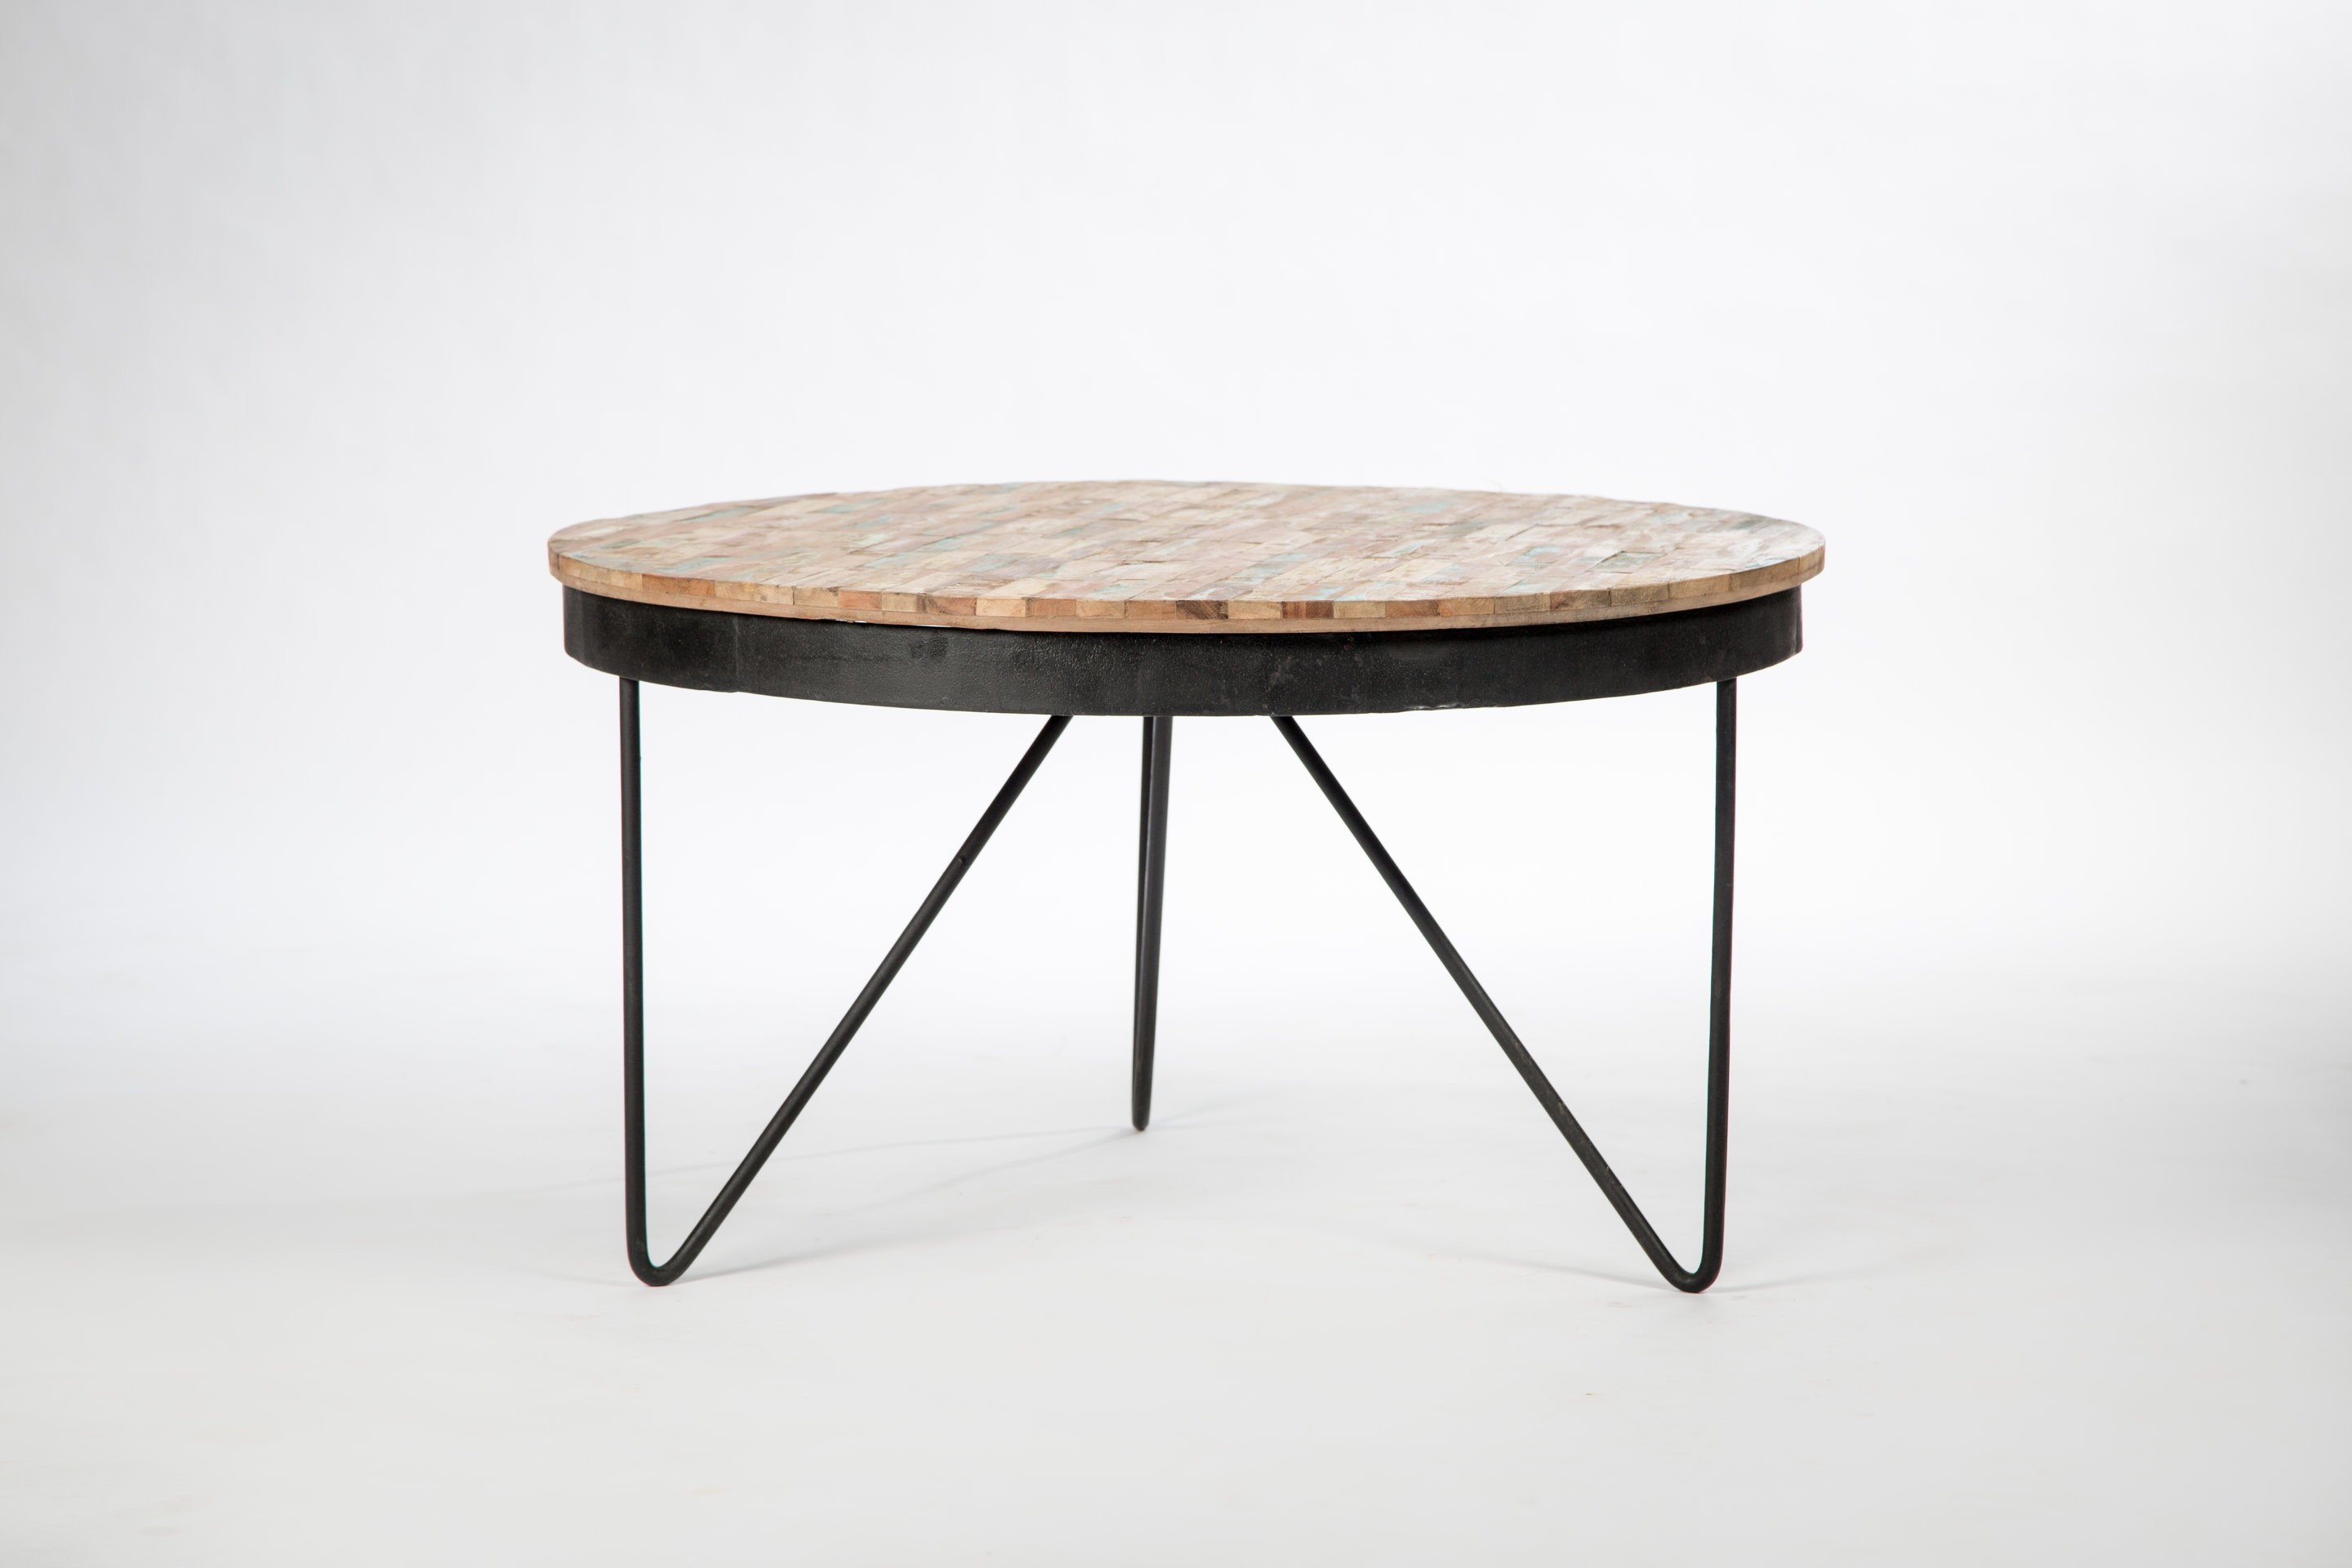 Table basse ronde ou ovale mobilier design d coration d for Table basse salon ronde ou ovale